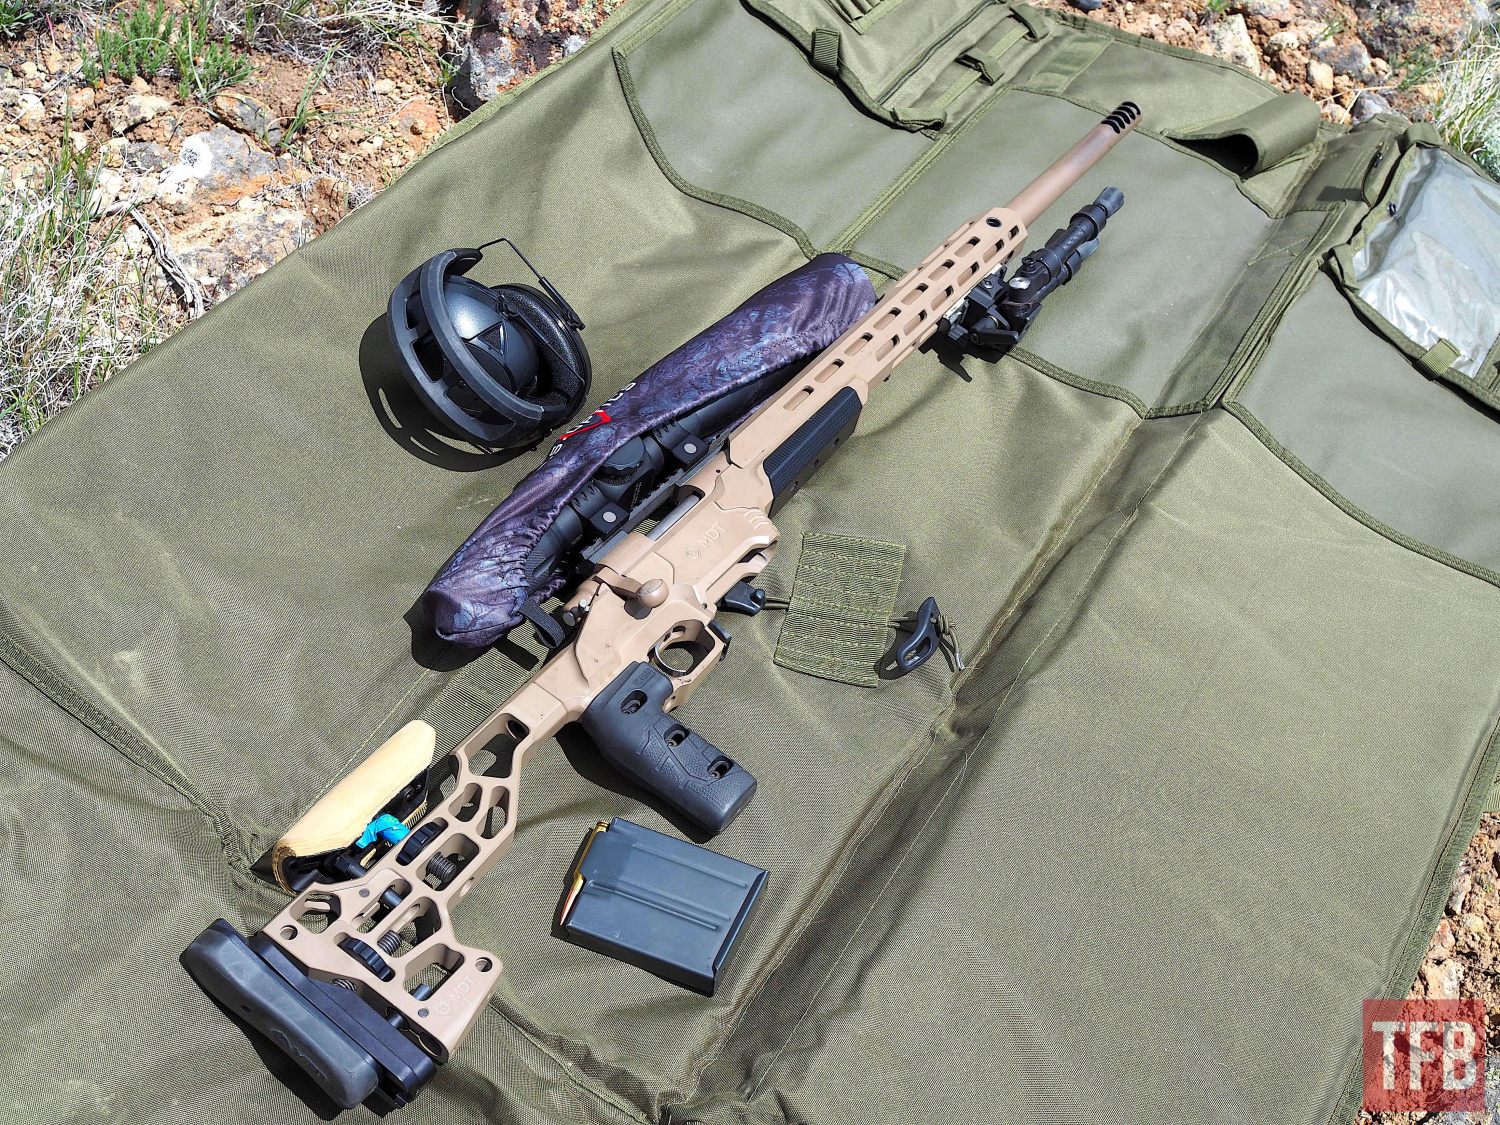 The instructor's custom rifle w blueprinted action, MDT chassis and palma profile barrel